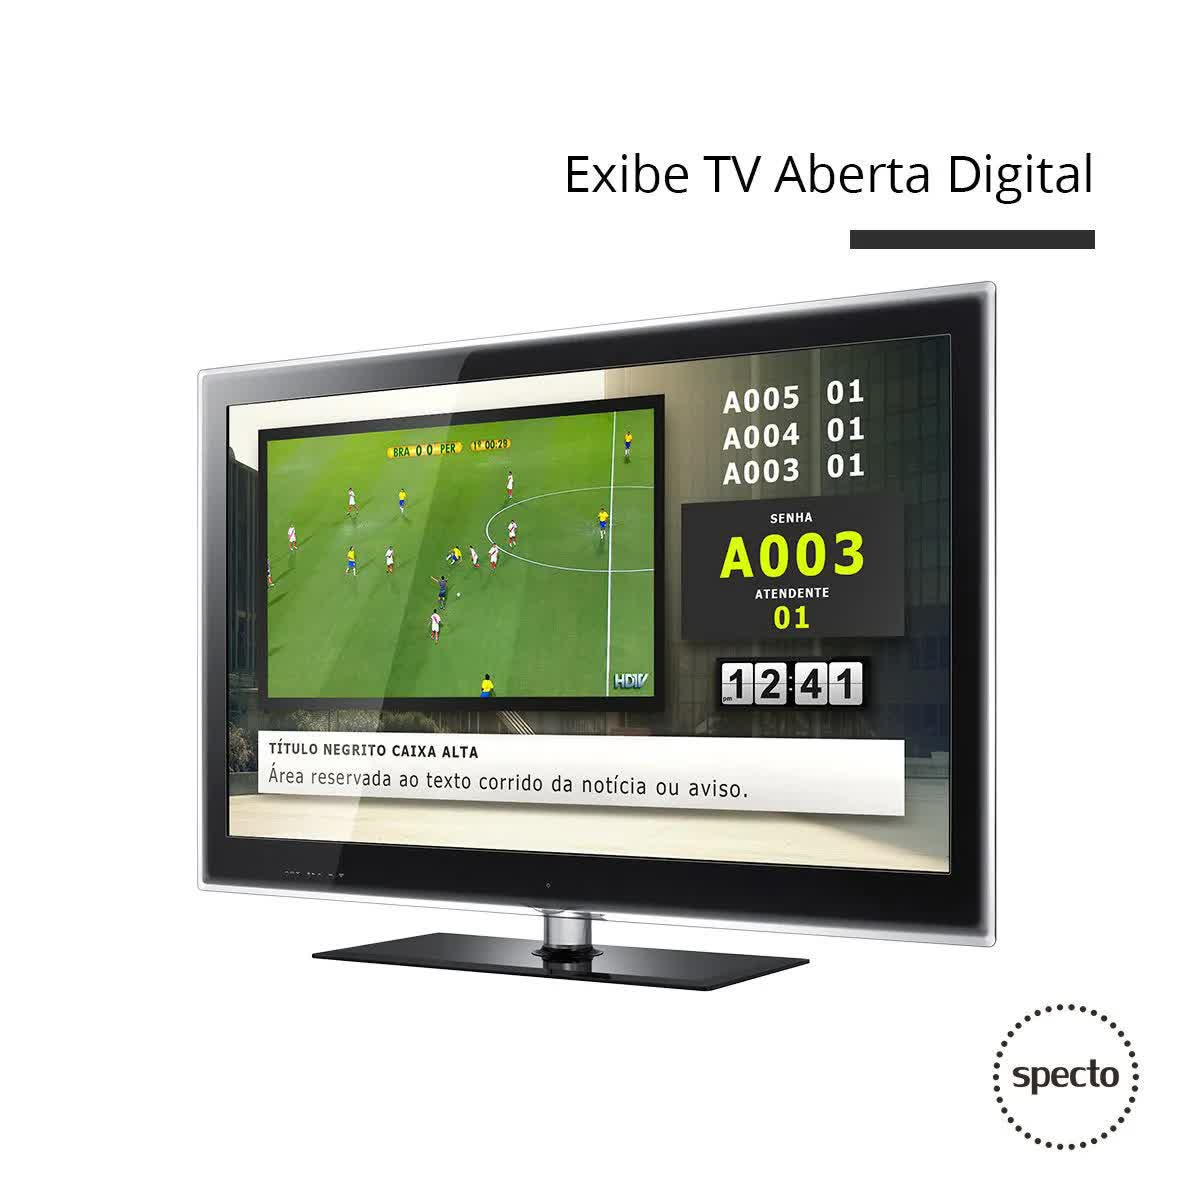 QUALPROX® UNITY Painel TV Digital com TES Touch  -  Specto Tecnologia